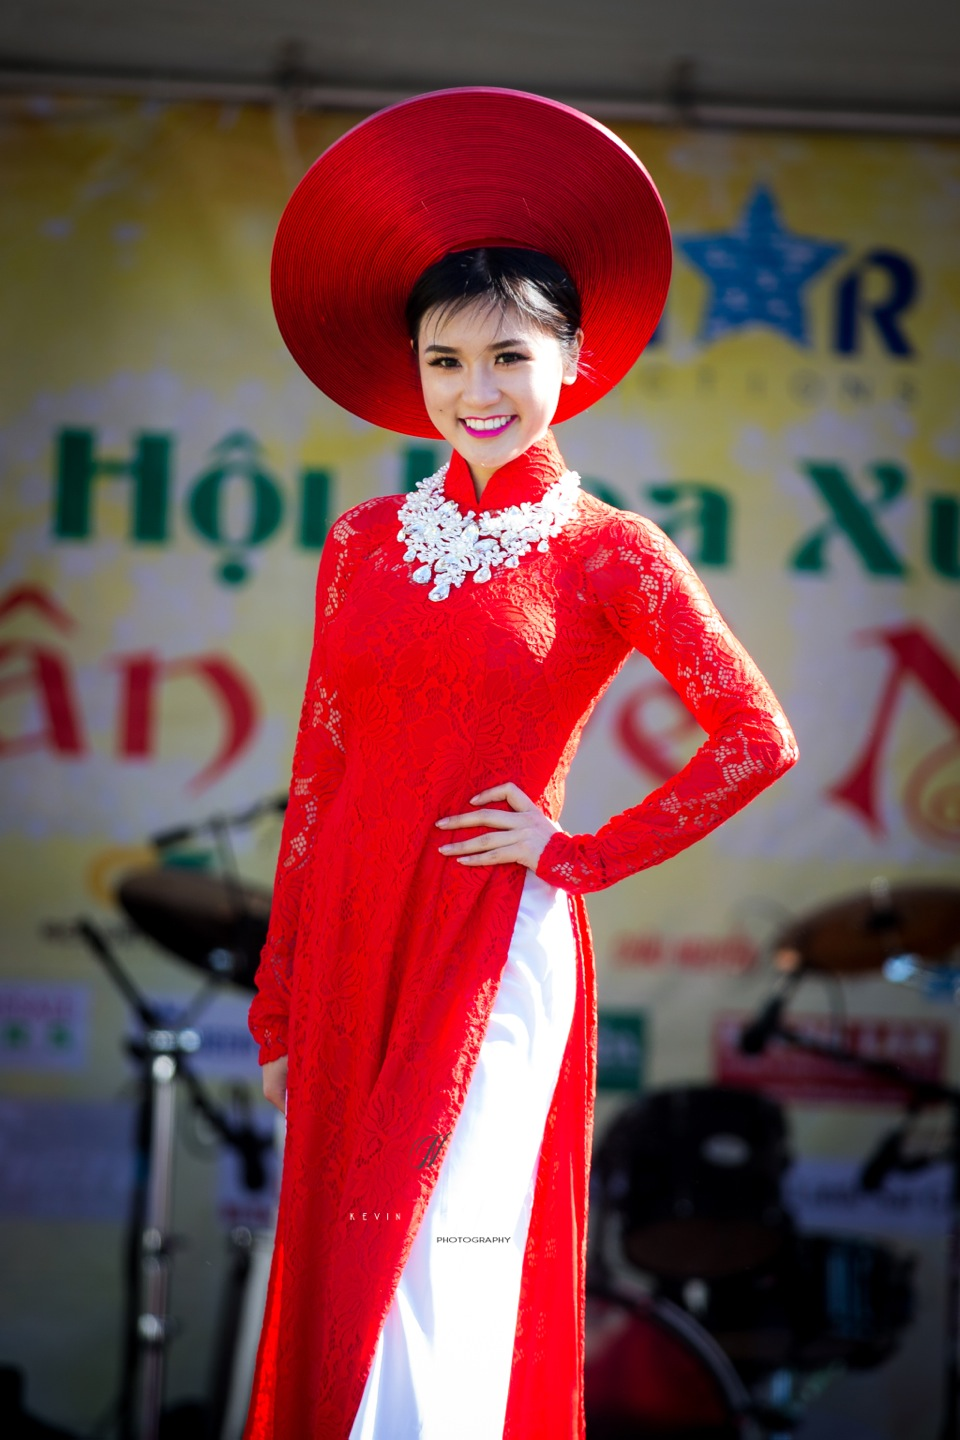 Hoi Hoa Xuân 2015 - Miss Vietnam of Northern California 2015 - Grand Century Mall - San Jose, CA - Image 139